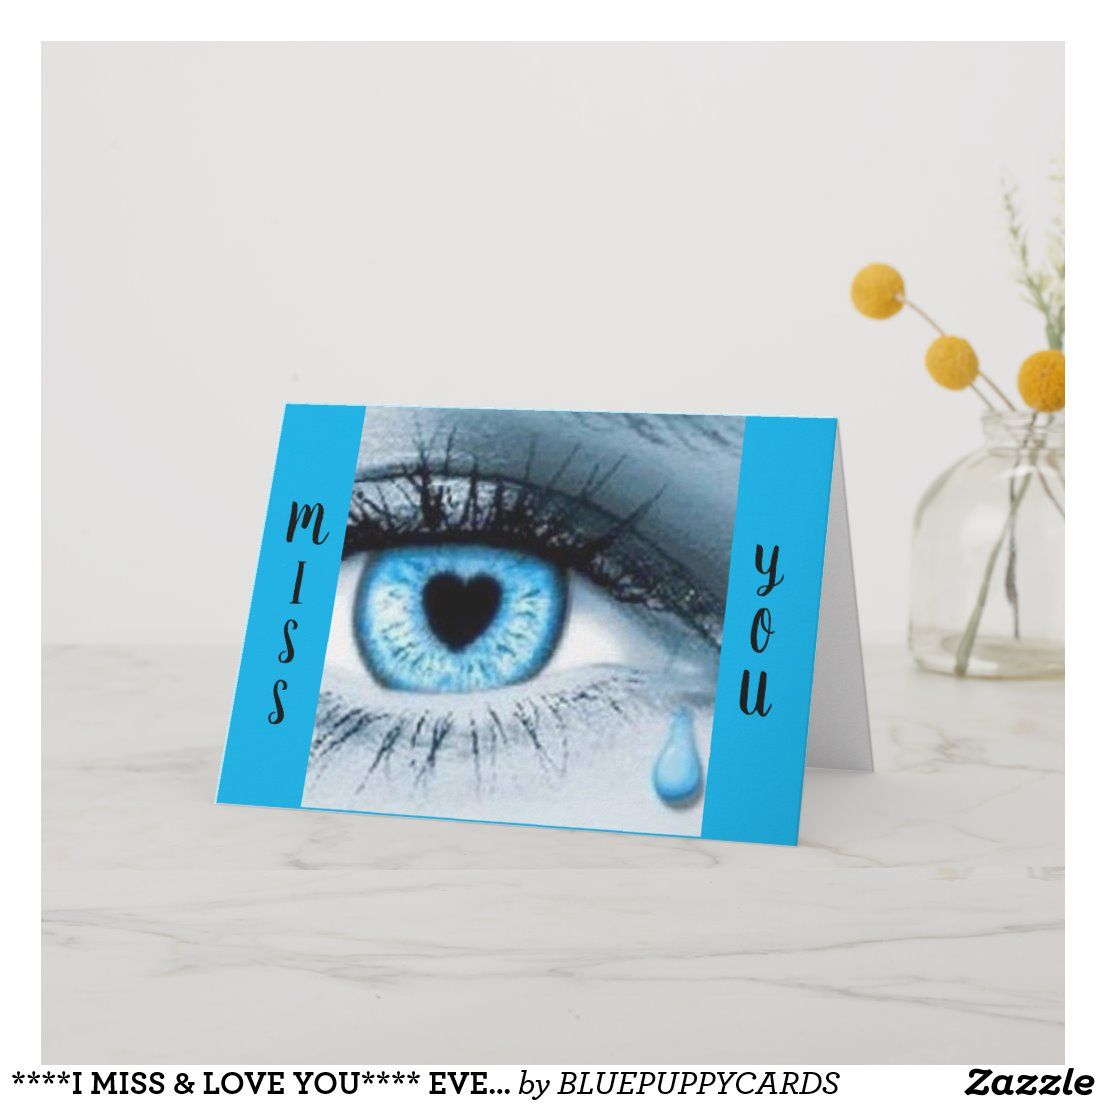 ****I MISS & LOVE YOU**** EVERY DAY EVERY MINUTE CARD | Zazzle.com